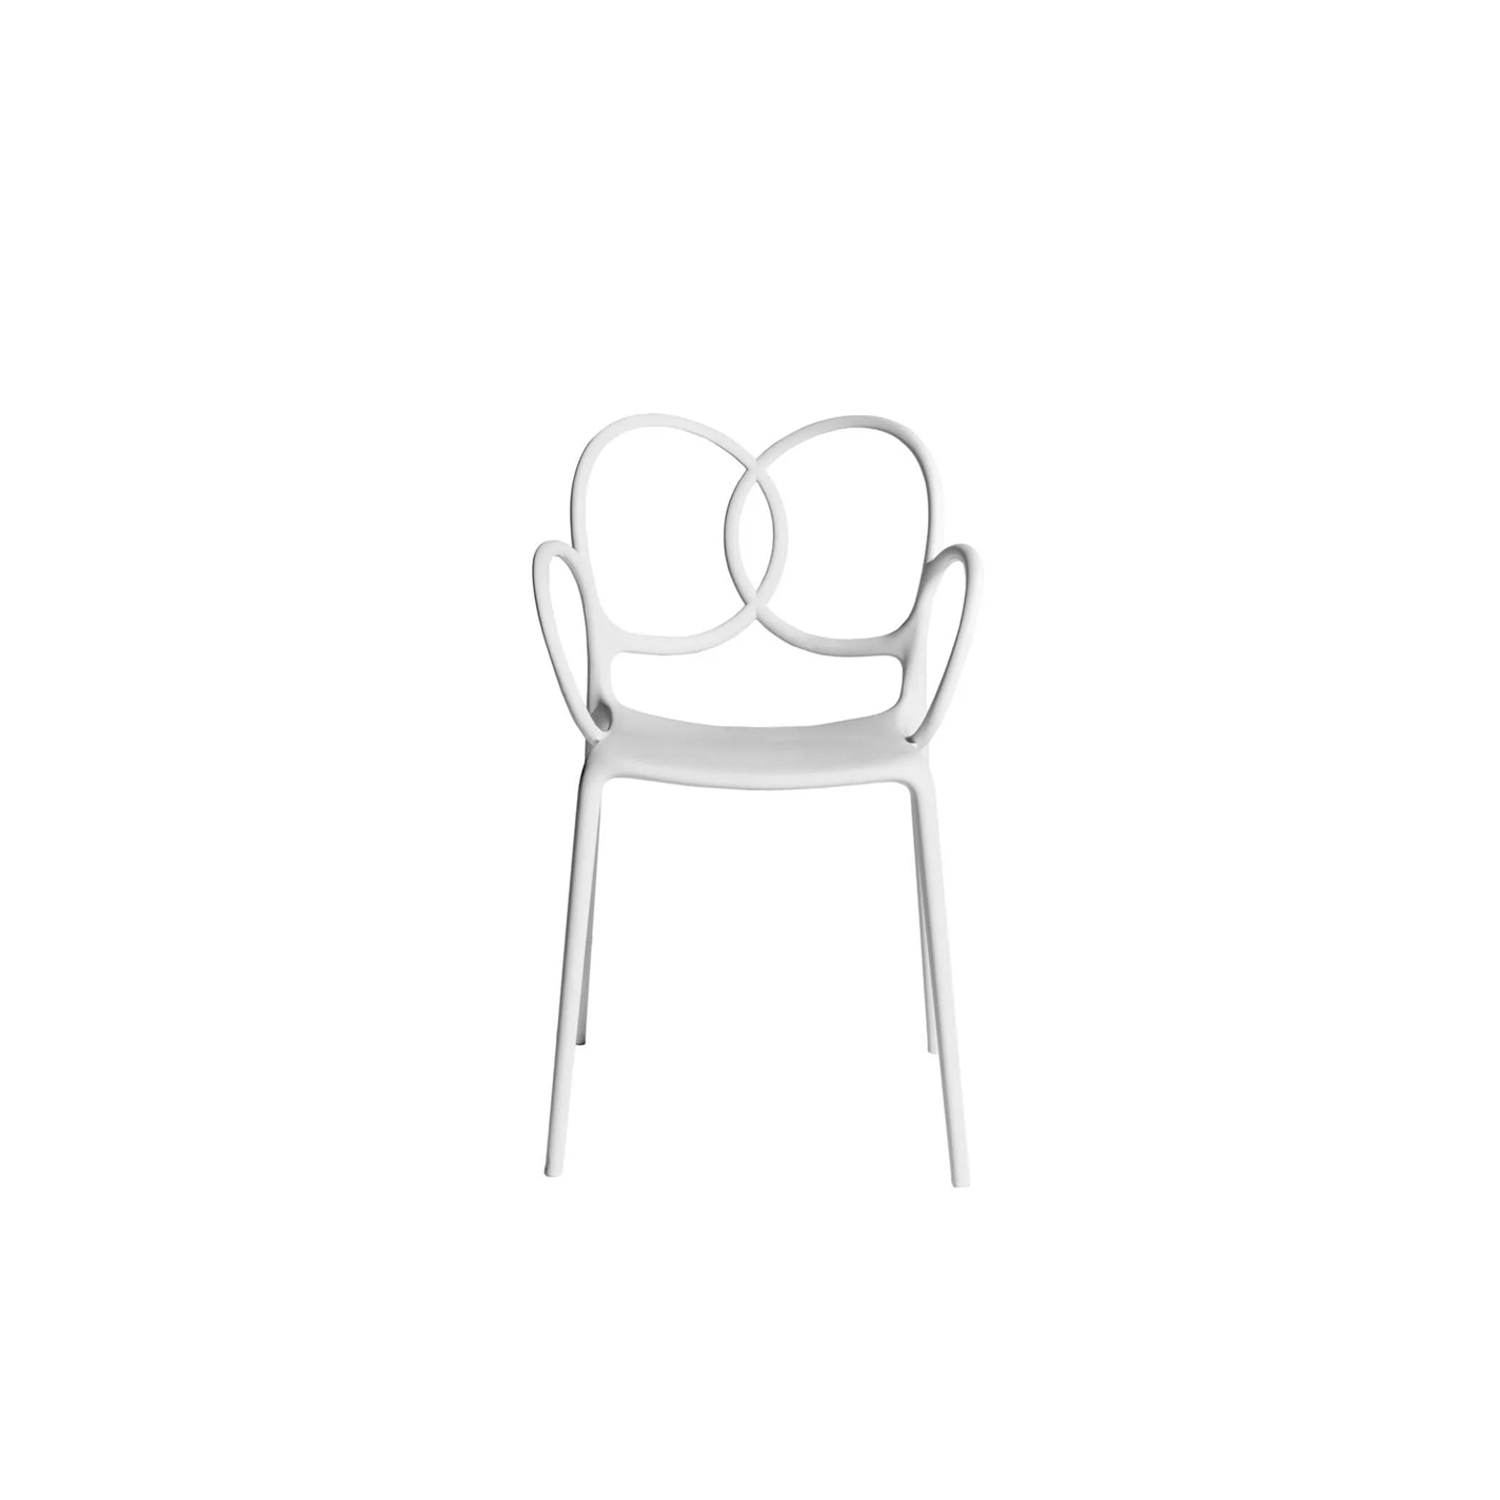 """Sissi Armchair Green Collection - Sissi is a sculptural, very versatile, self- centred and contemporary piece. """"Its modern design winks cheekily at the past and at the female world. The merging and intersecting rings look as if they have been bent by the hand of the viennese craftsmen, whom since over a century ago, would offer the world an elegant and design archetype. The connections, linked in such a sensual way, turn sissi into a refined and sculptural piece, just like the ultimate viennese chair - famous for its wooden curves- it is inspired by. Just like a confident, self-assured women changes her clothes to suit her mood, this chair is complemented by an essential part of its design, the seat cover.""""Ludovica and Roberto Palomba.  The material with which this collection is made derives from industrial recycling coming from internal production waste, and therefore controlled, and from post-consumer recycling, that is from products disposed of with separate collection - such as PET bottles and containers, for instance - and recycled, thus giving life to new objects.  All the seats made with this material are characterized by neutral colors - such as black in particular - which makes them homogeneous. 